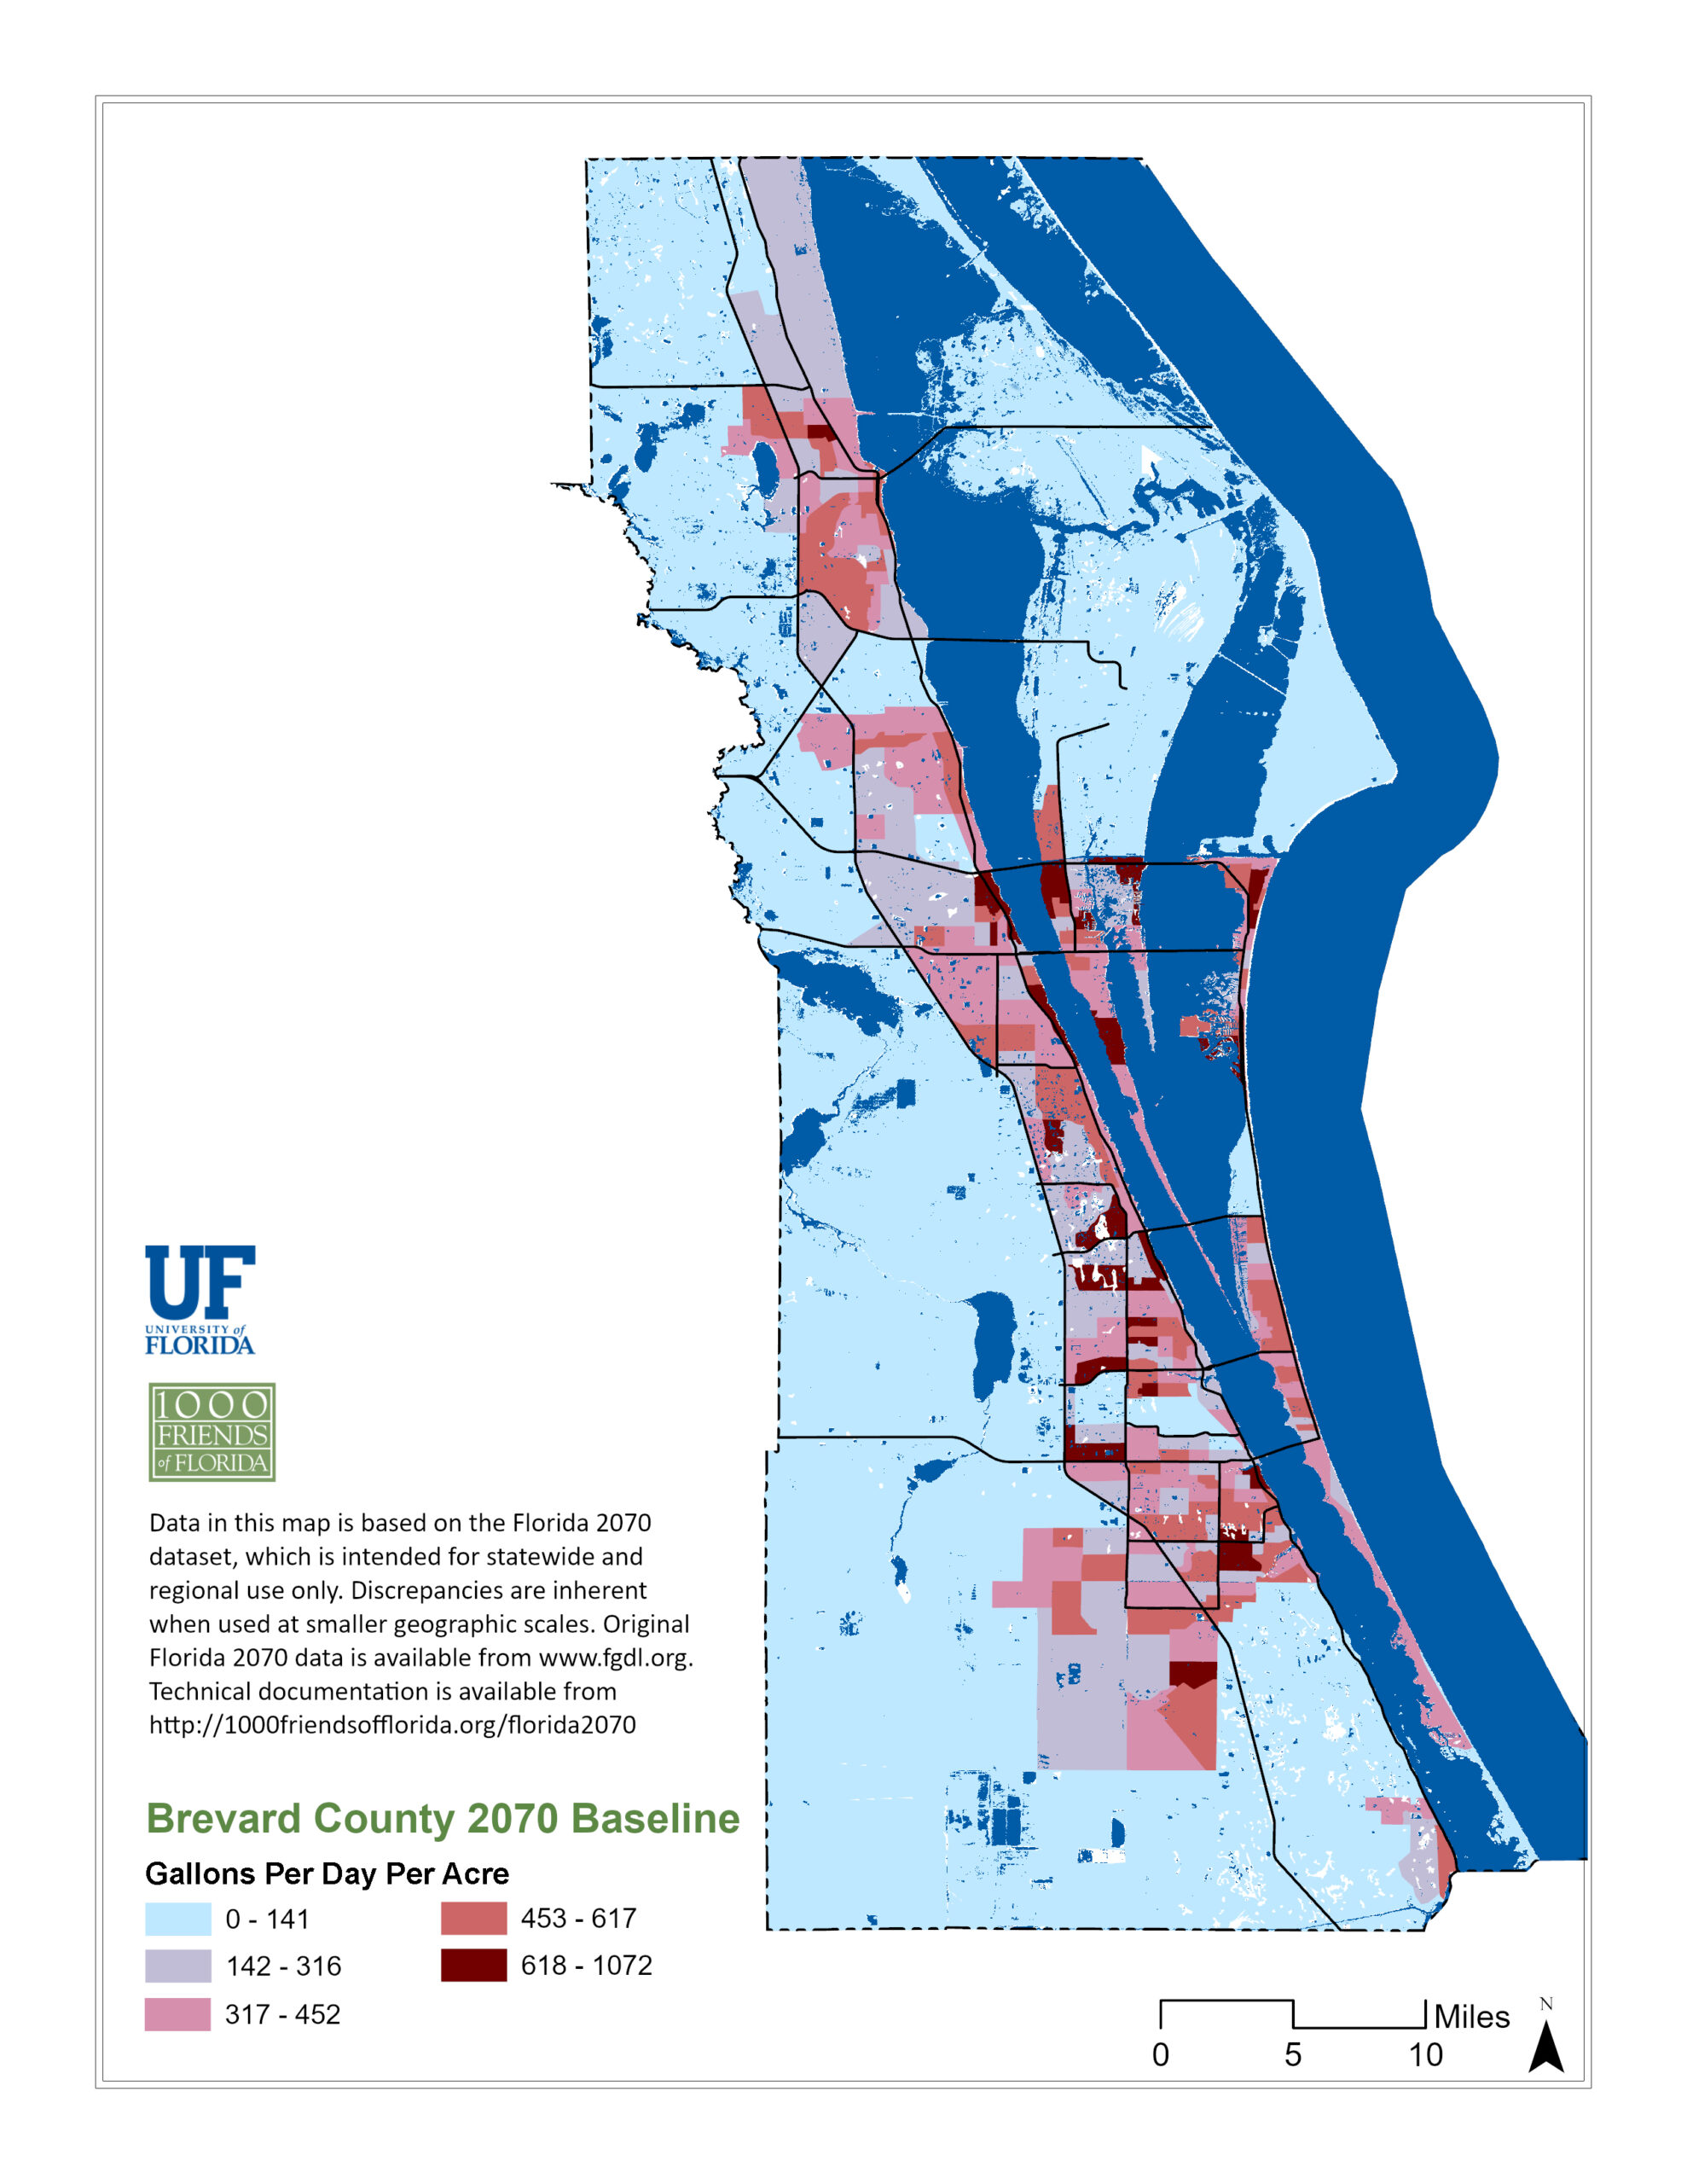 Advocating for Martin County